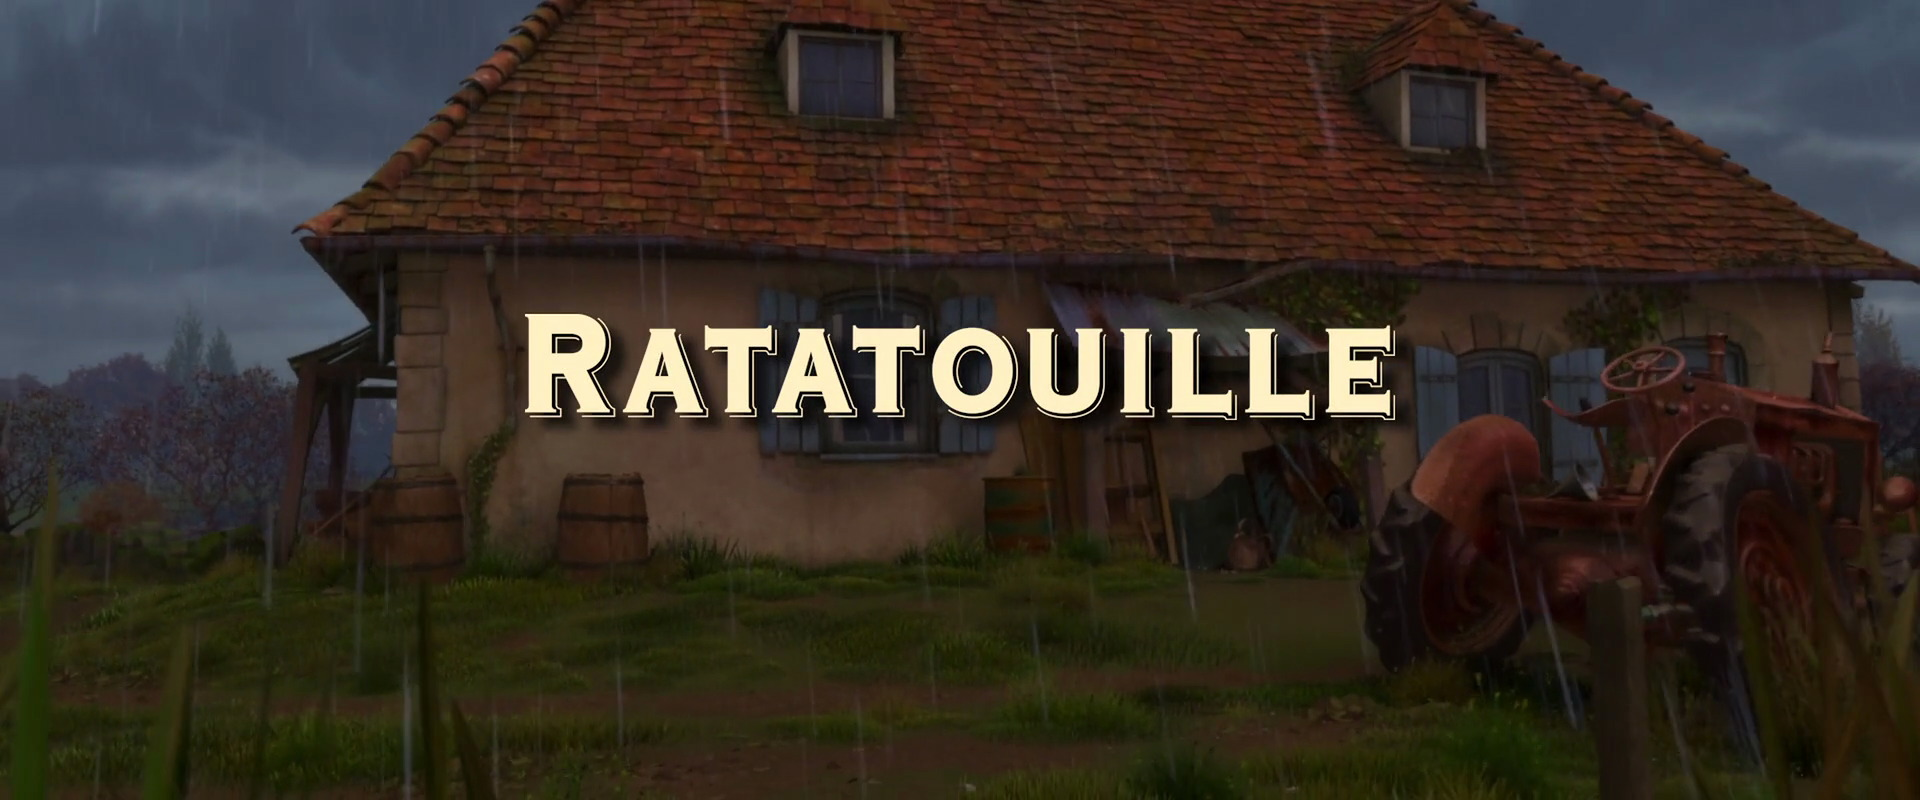 ratatouille-disneyscreencaps com- jpgRatatouille Dvd Menu